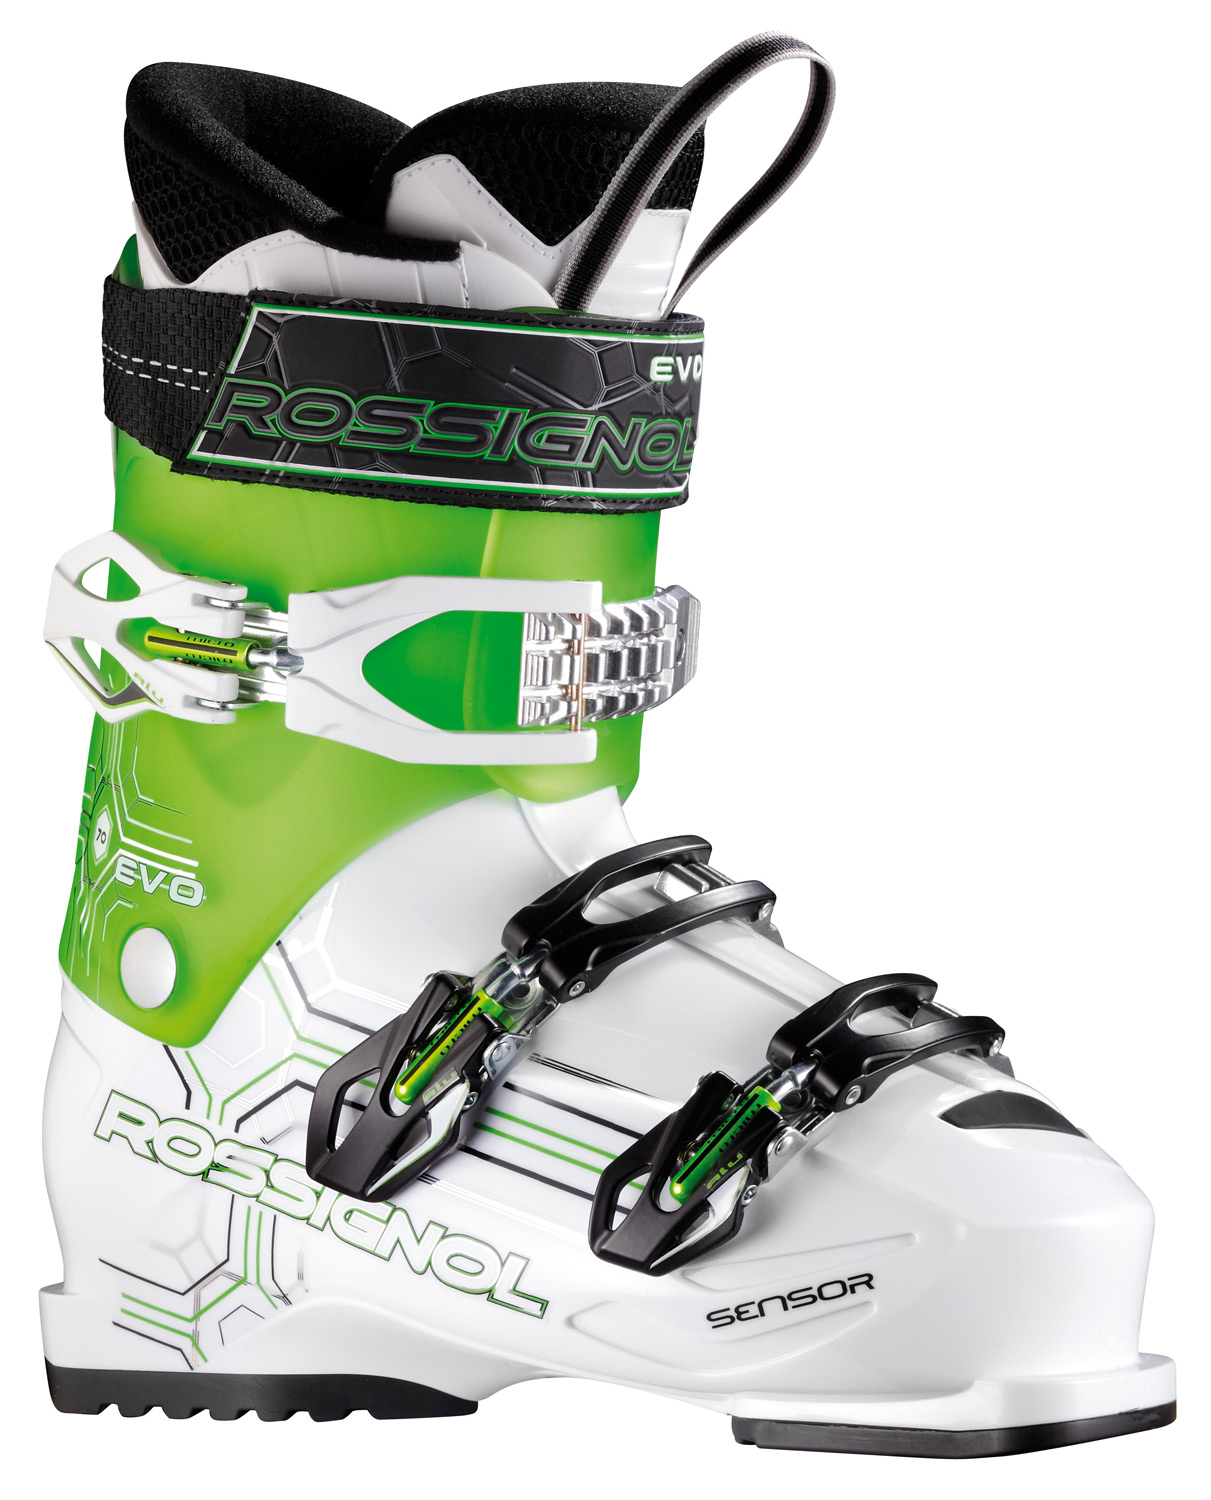 Ski Key Features of the Rossignol Evo 70 Ski Boots: Material : new polyolefine Padding : machined pu Last : 104 mm Flex : 70 - $139.95